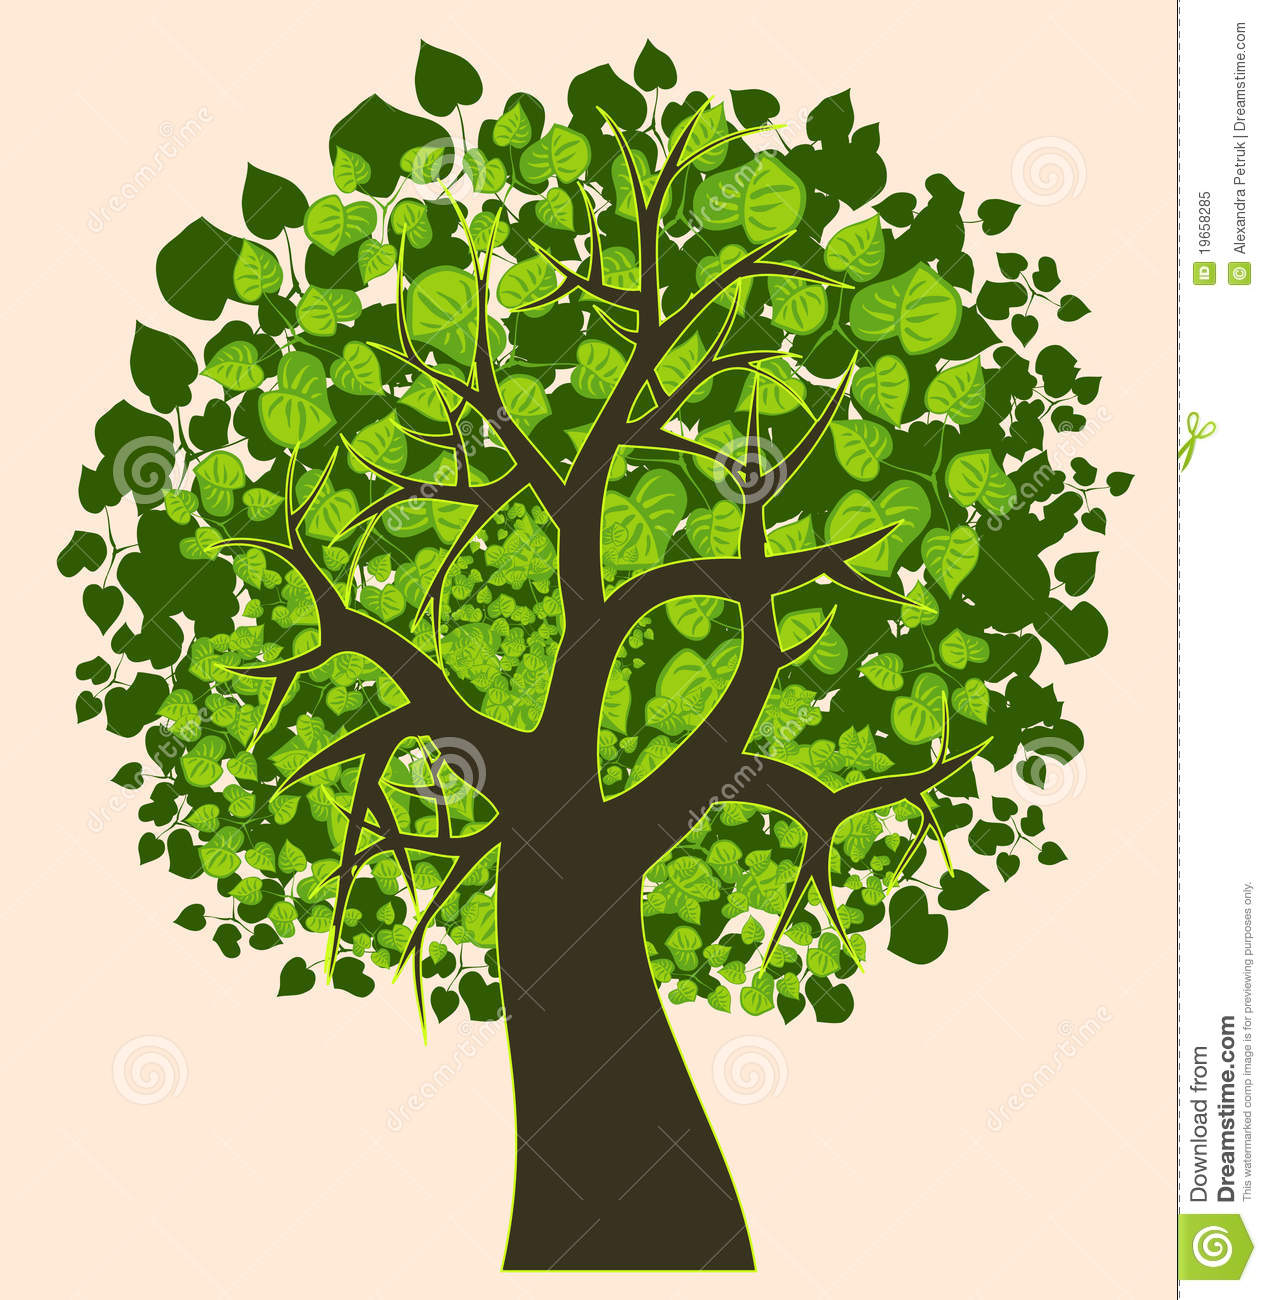 Illustration Of An Isolated Summer Tree Royalty Free Stock Photo ...